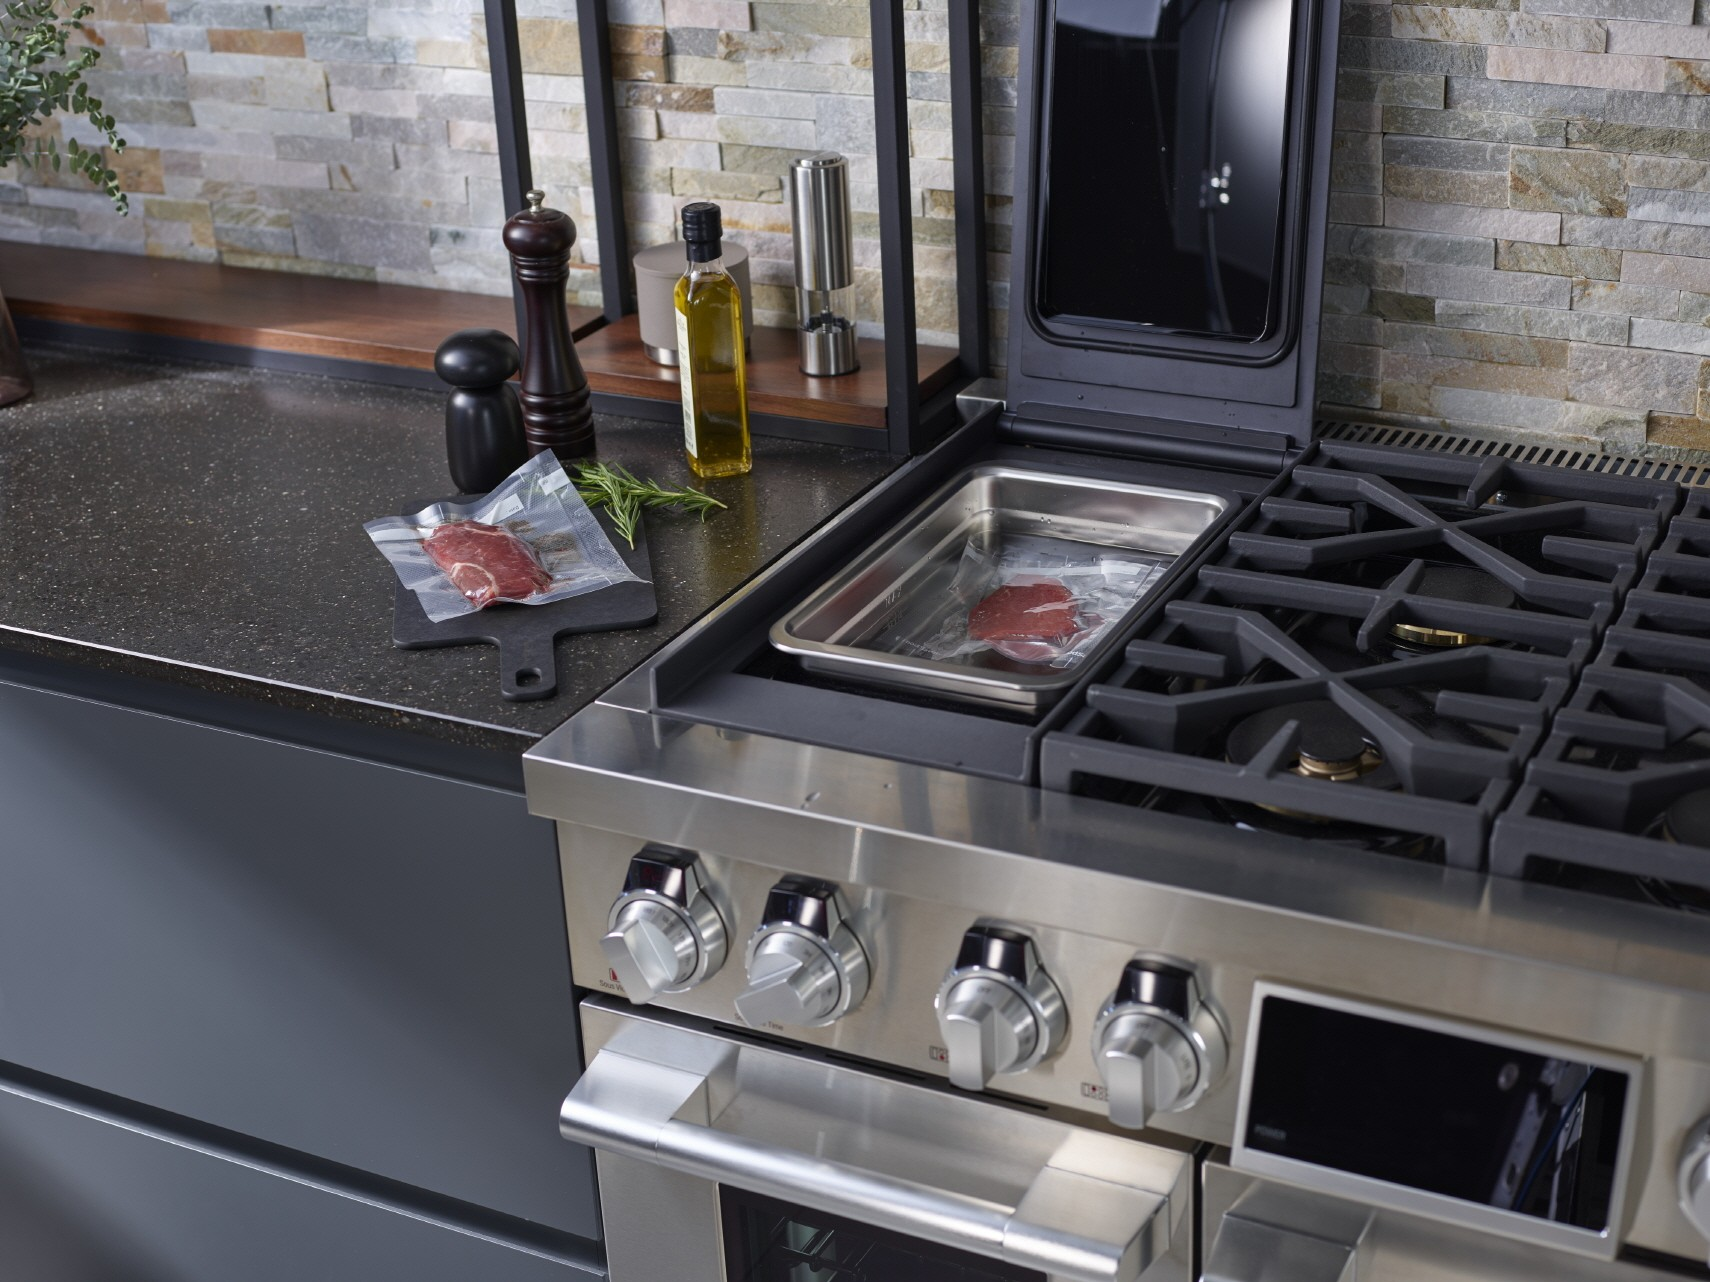 SIGNATURE KITCHEN SUITE oven induction cooktop with sous-vide section door open